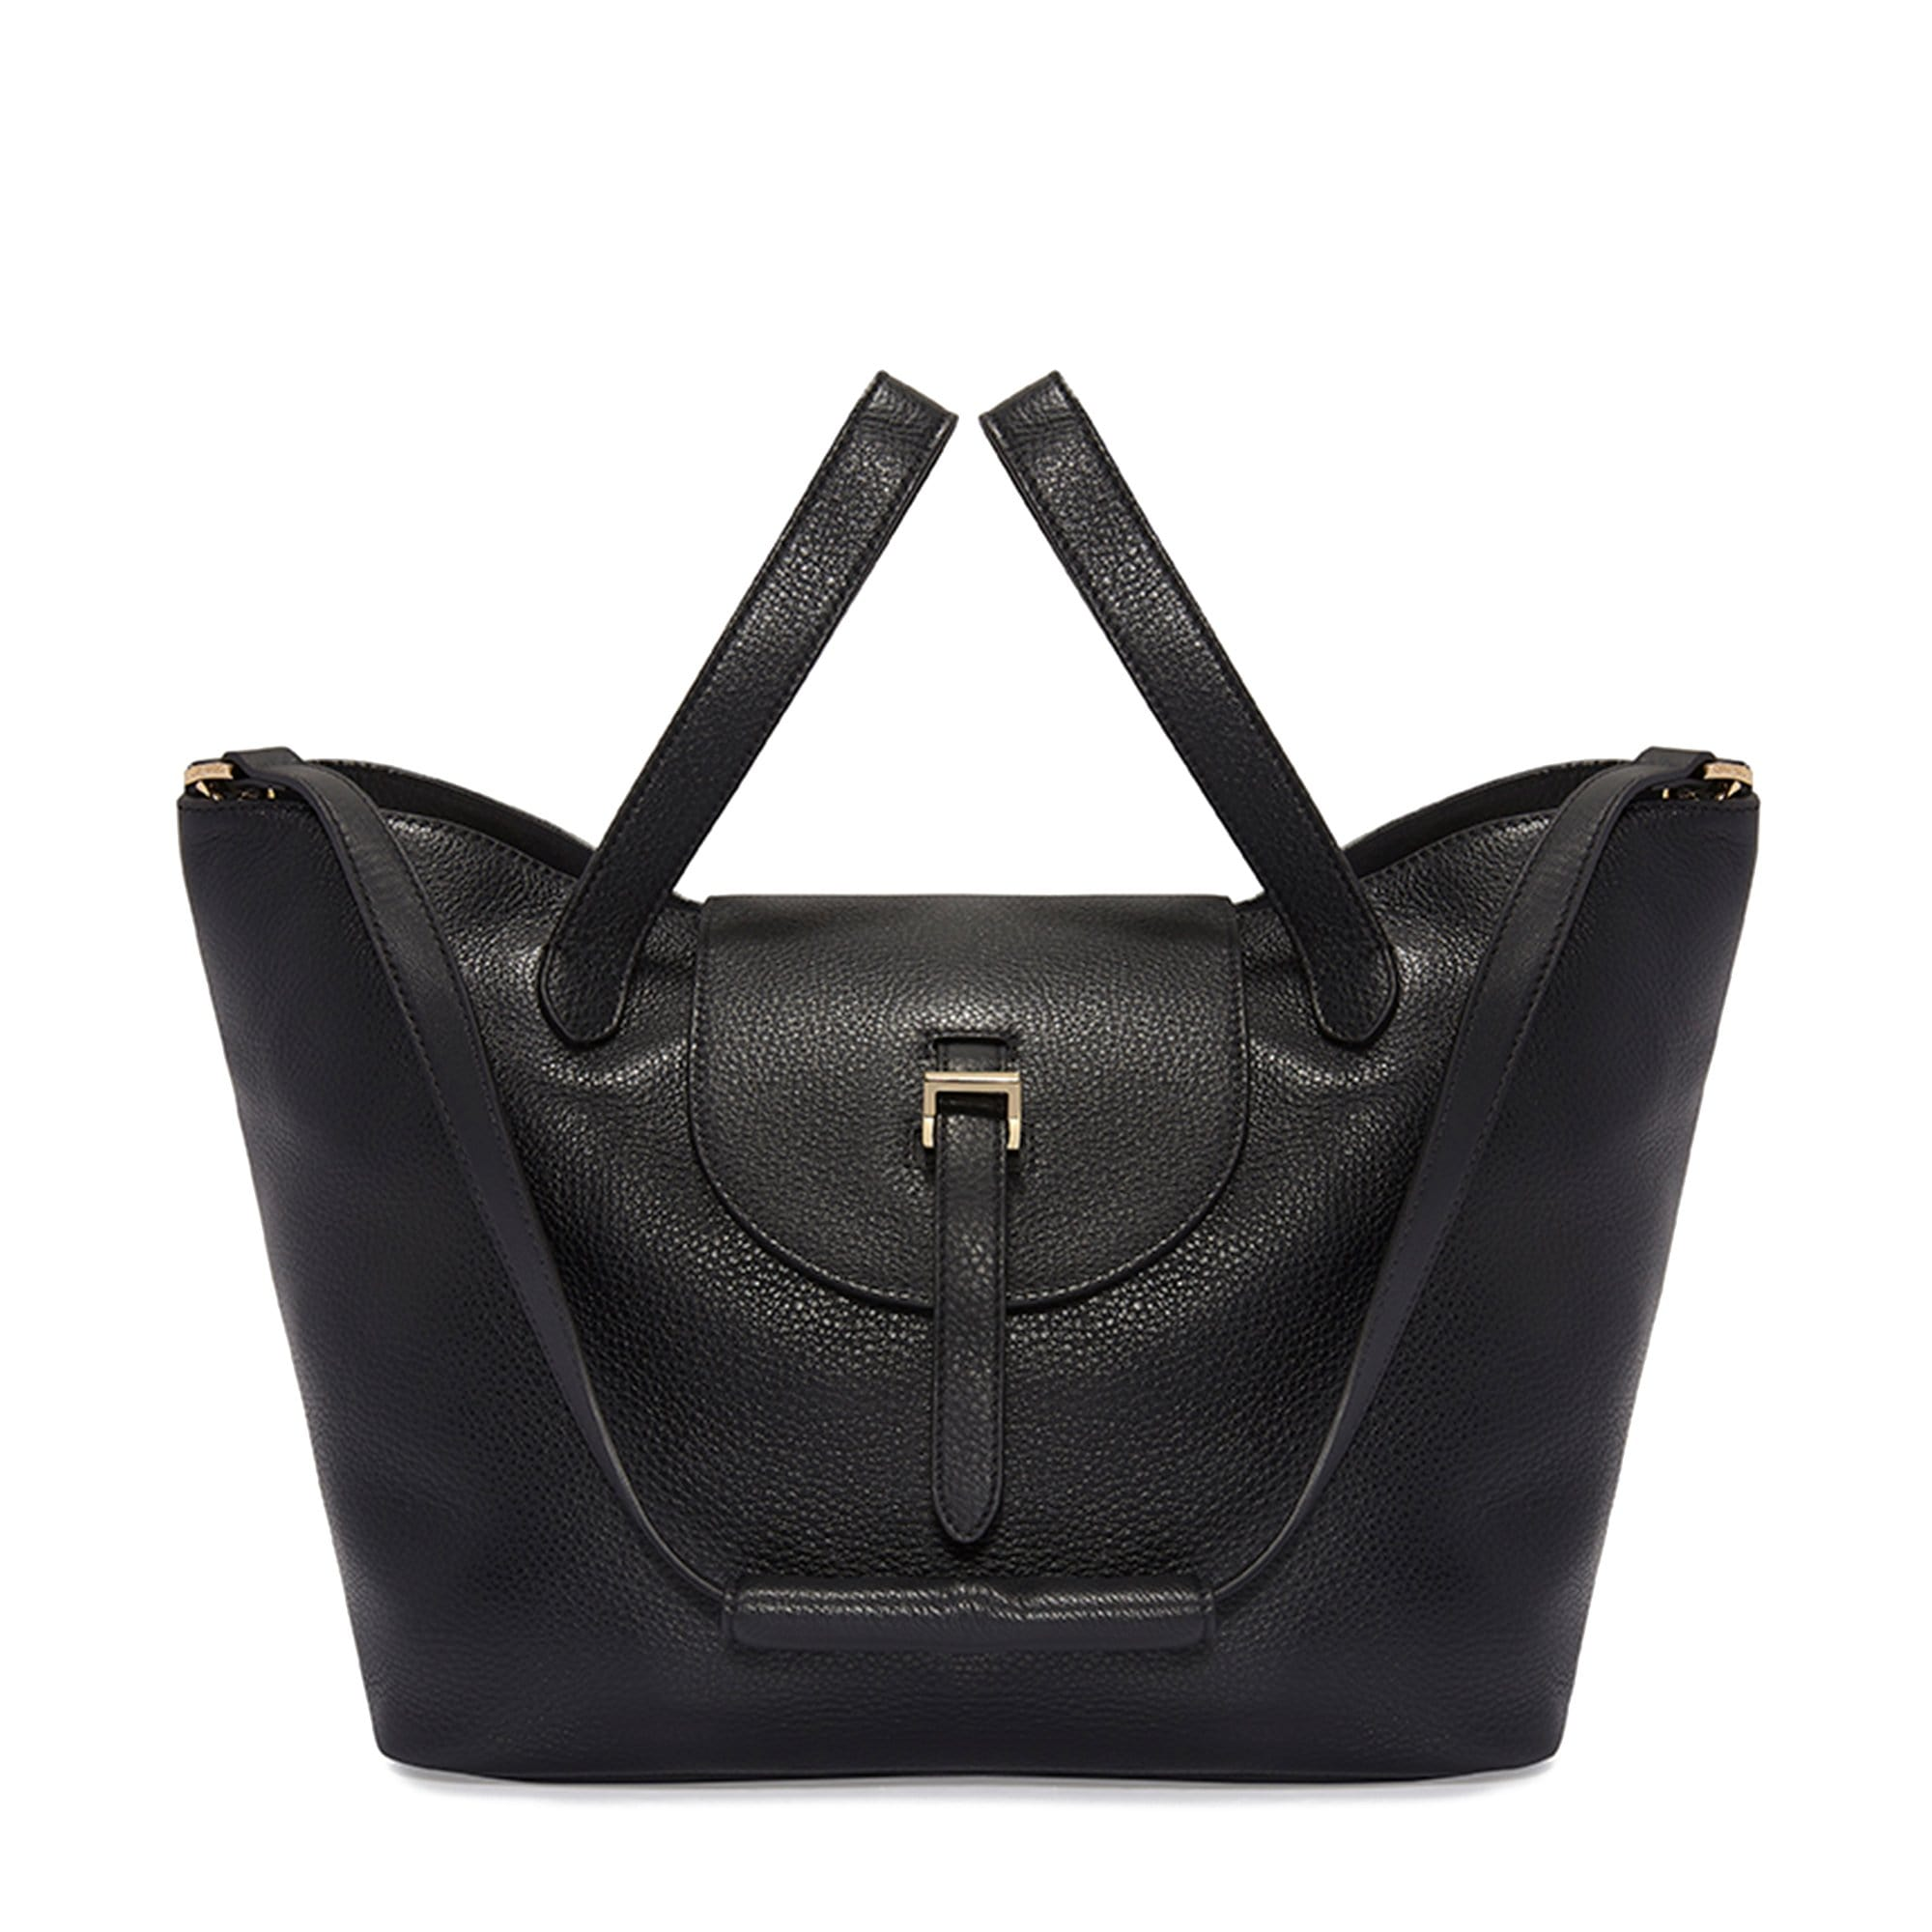 Thela Black Leather Tote Bag for Women